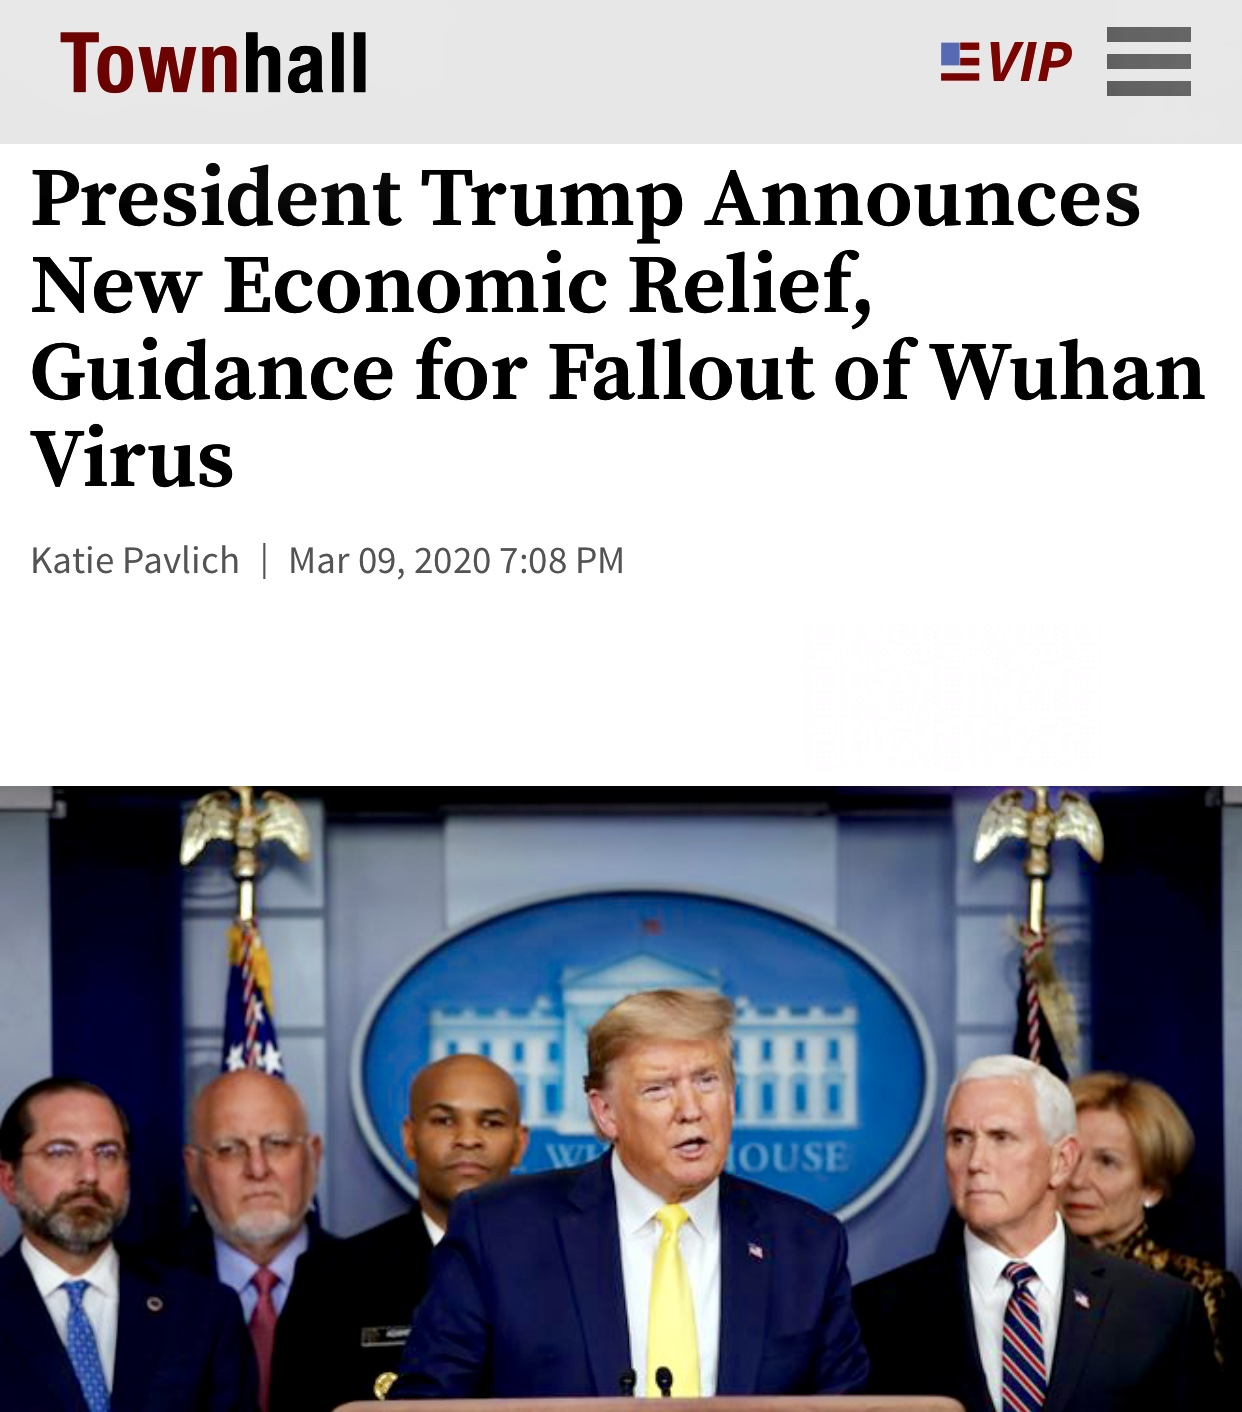 President Trump Announces New Economic Relief for the Fallout of Wuhan Virus